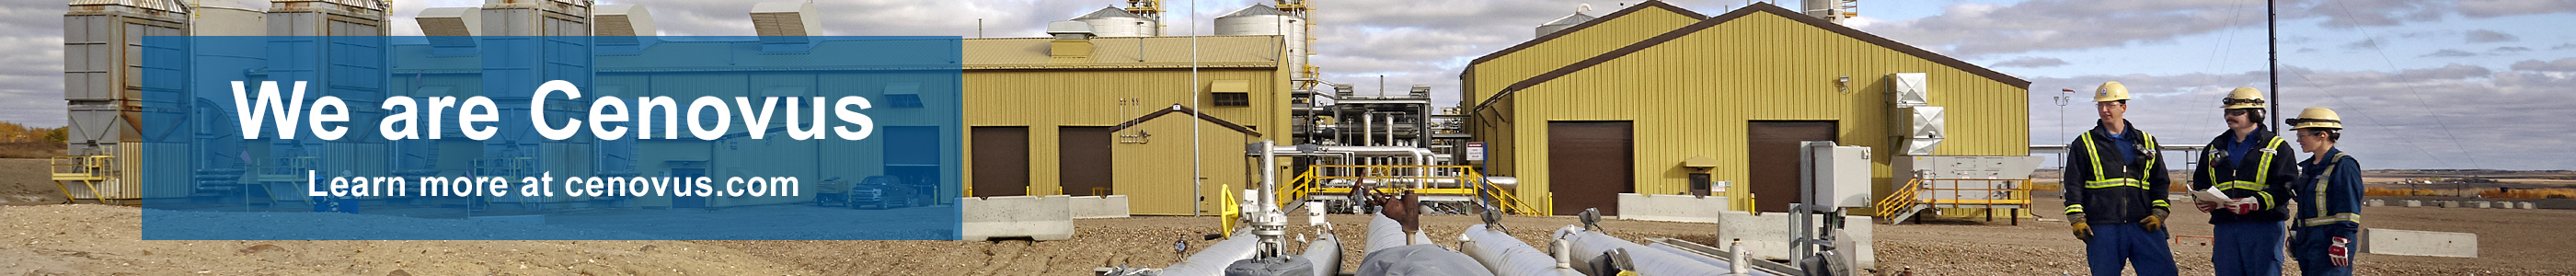 On January 1, 2021, Cenovus Energy acquired Husky Energy to form the third largest Canadian oil and natural gas producer and the second largest Canadian refiner. Learn more at Cenovus.com.